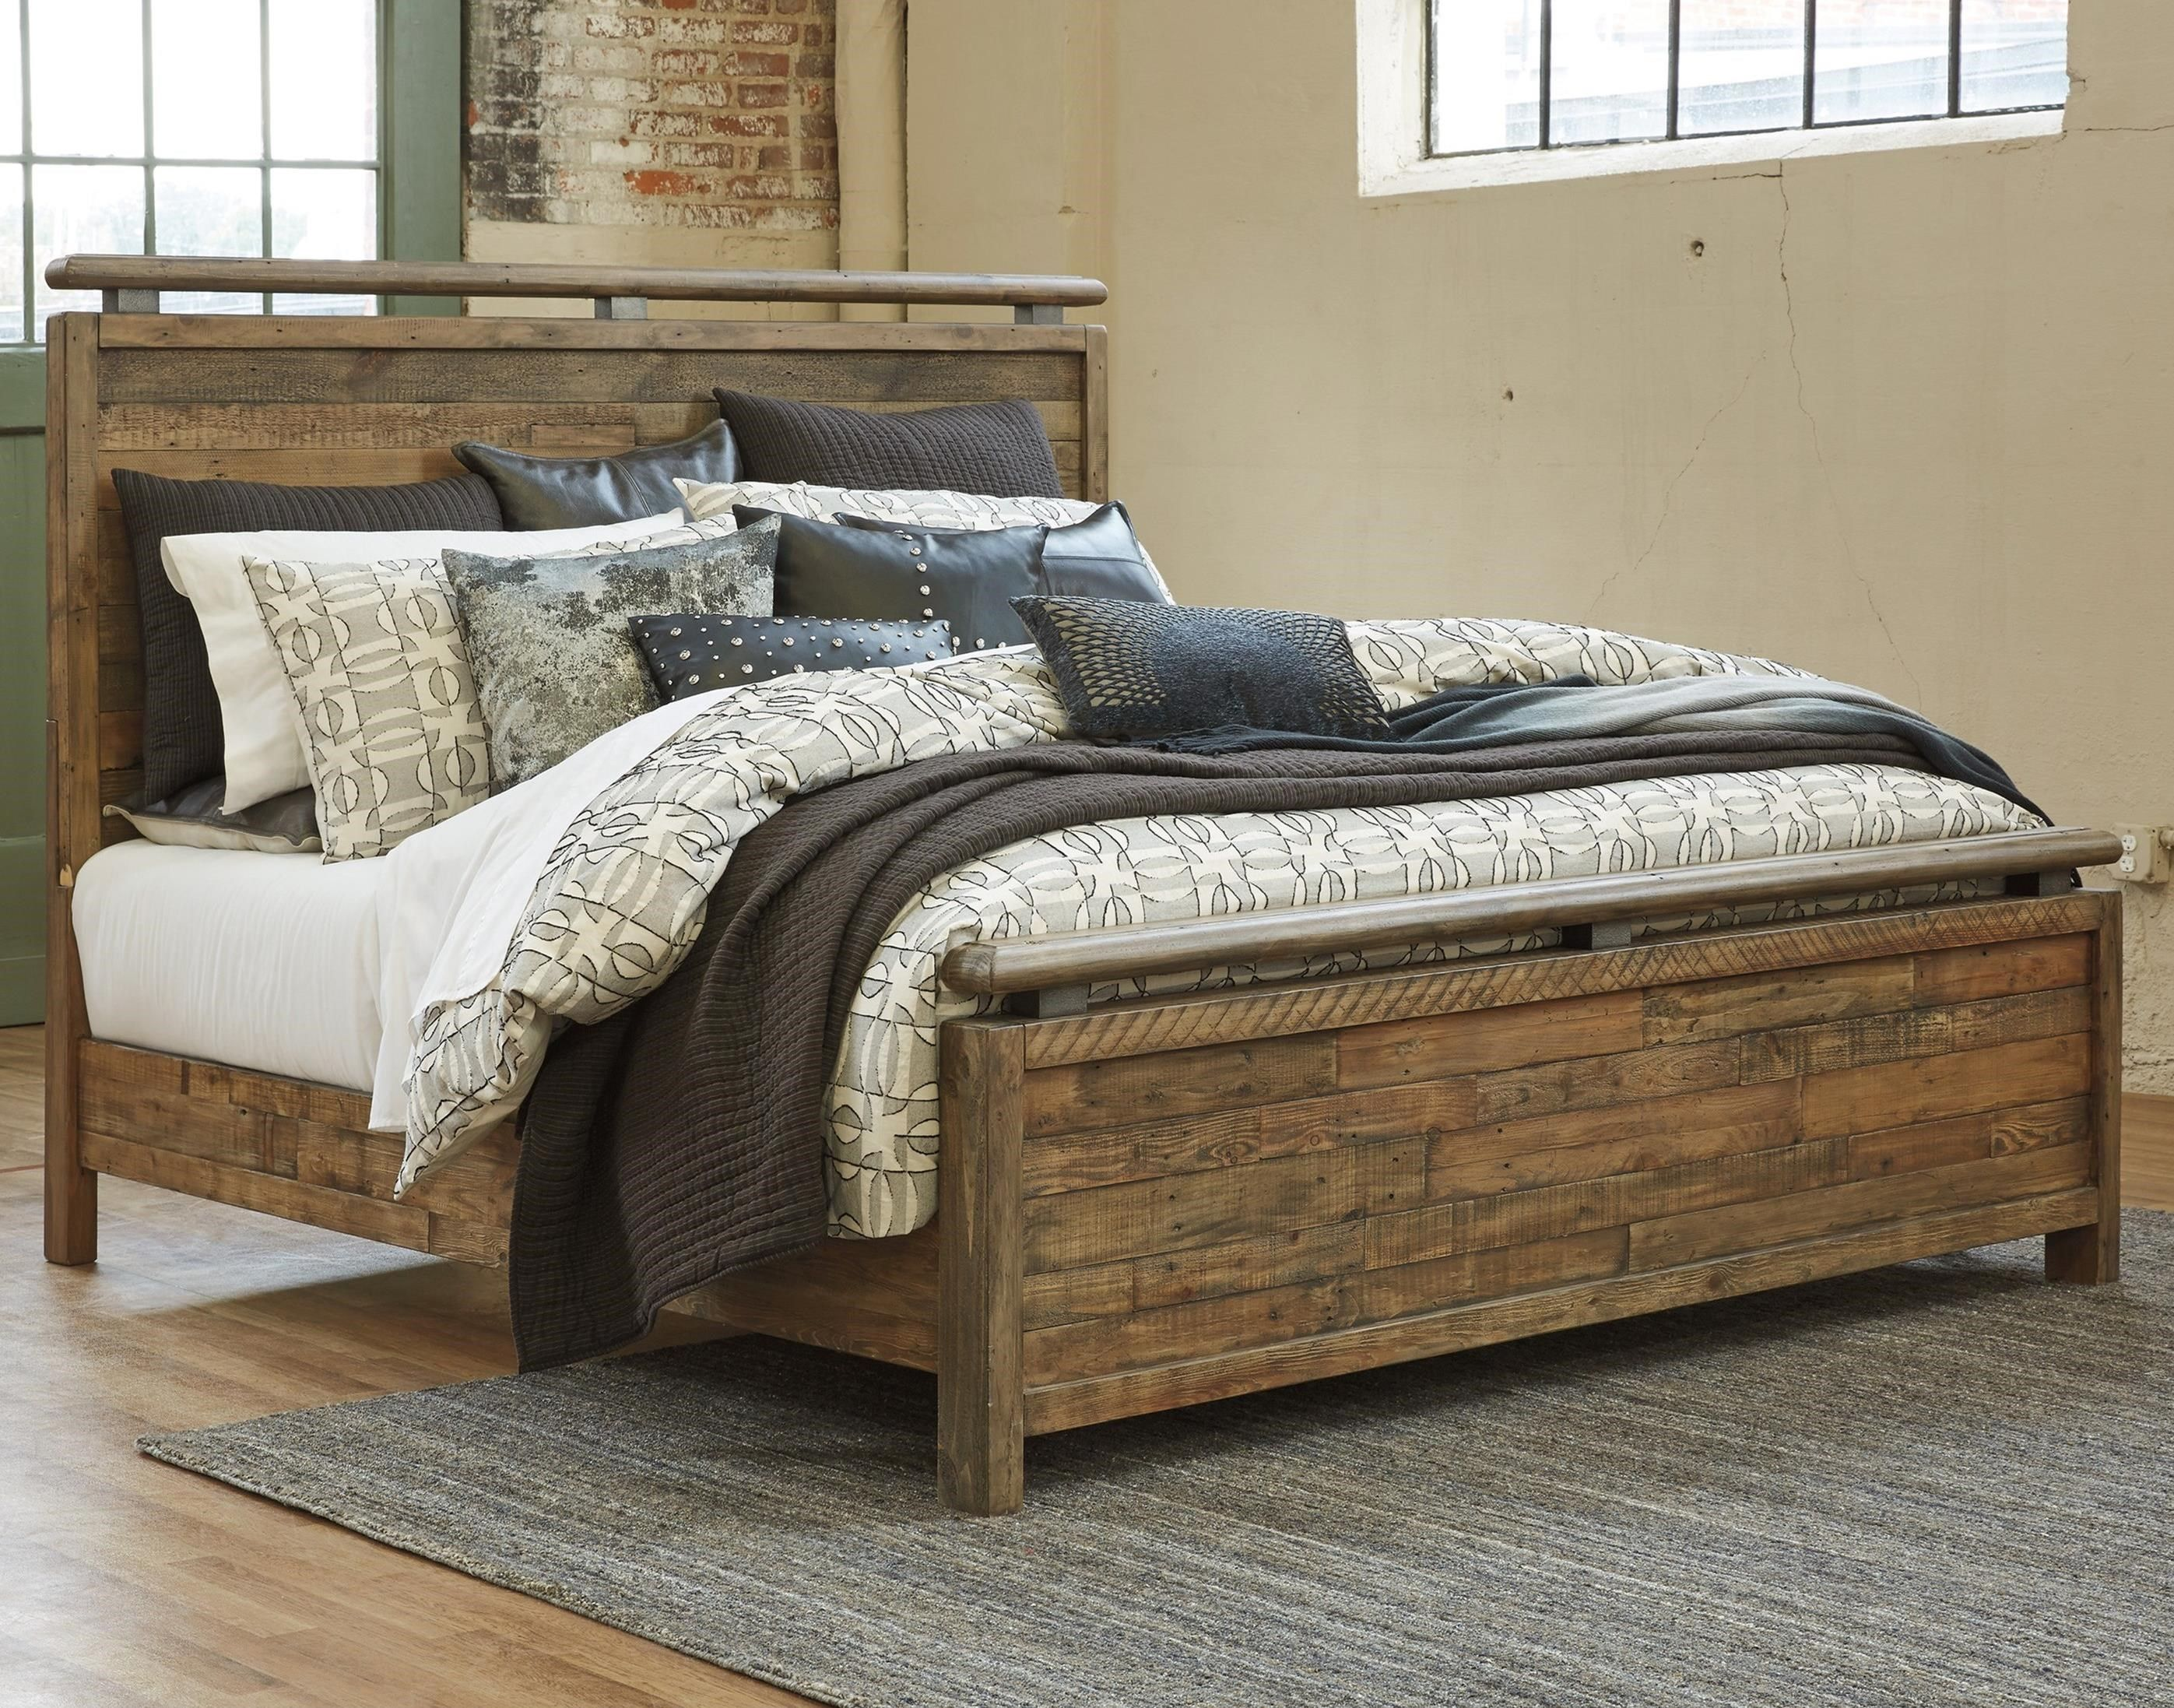 Pin by Iris Clover on Bed Queen panel beds, Panel bed